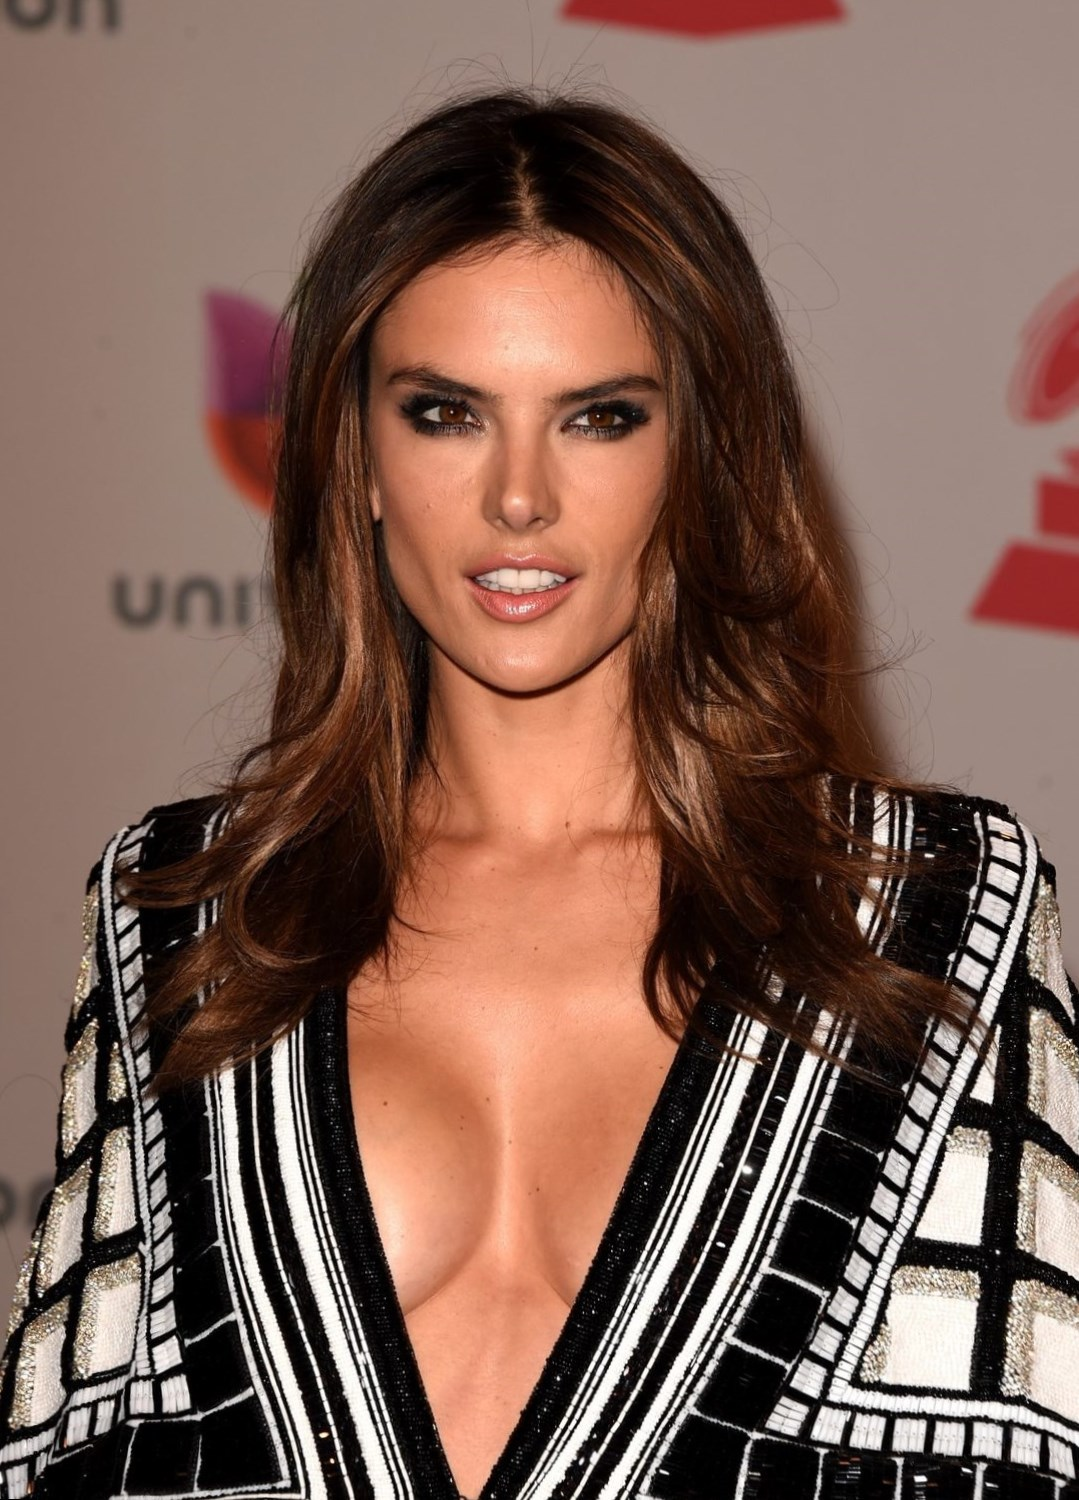 Alessandra Ambrosio weight, height and age. We know it all! алессандра амбросио